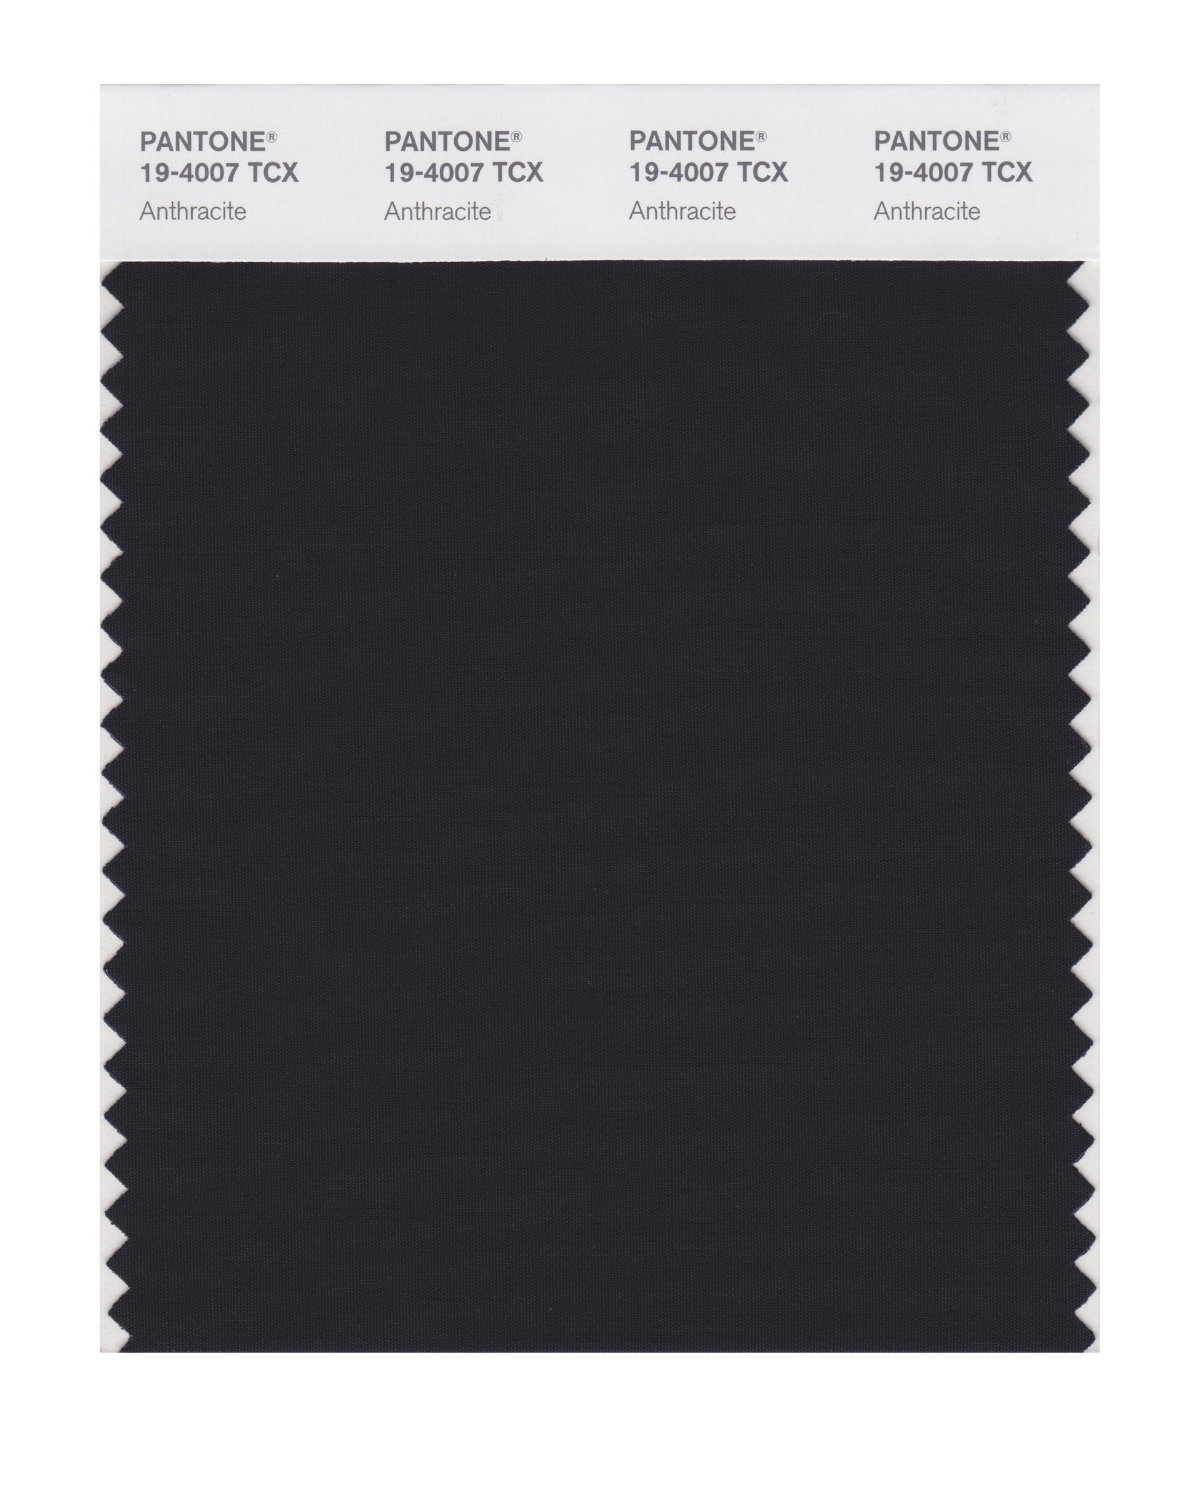 Pantone Smart Swatch 19-4007 Anthracite